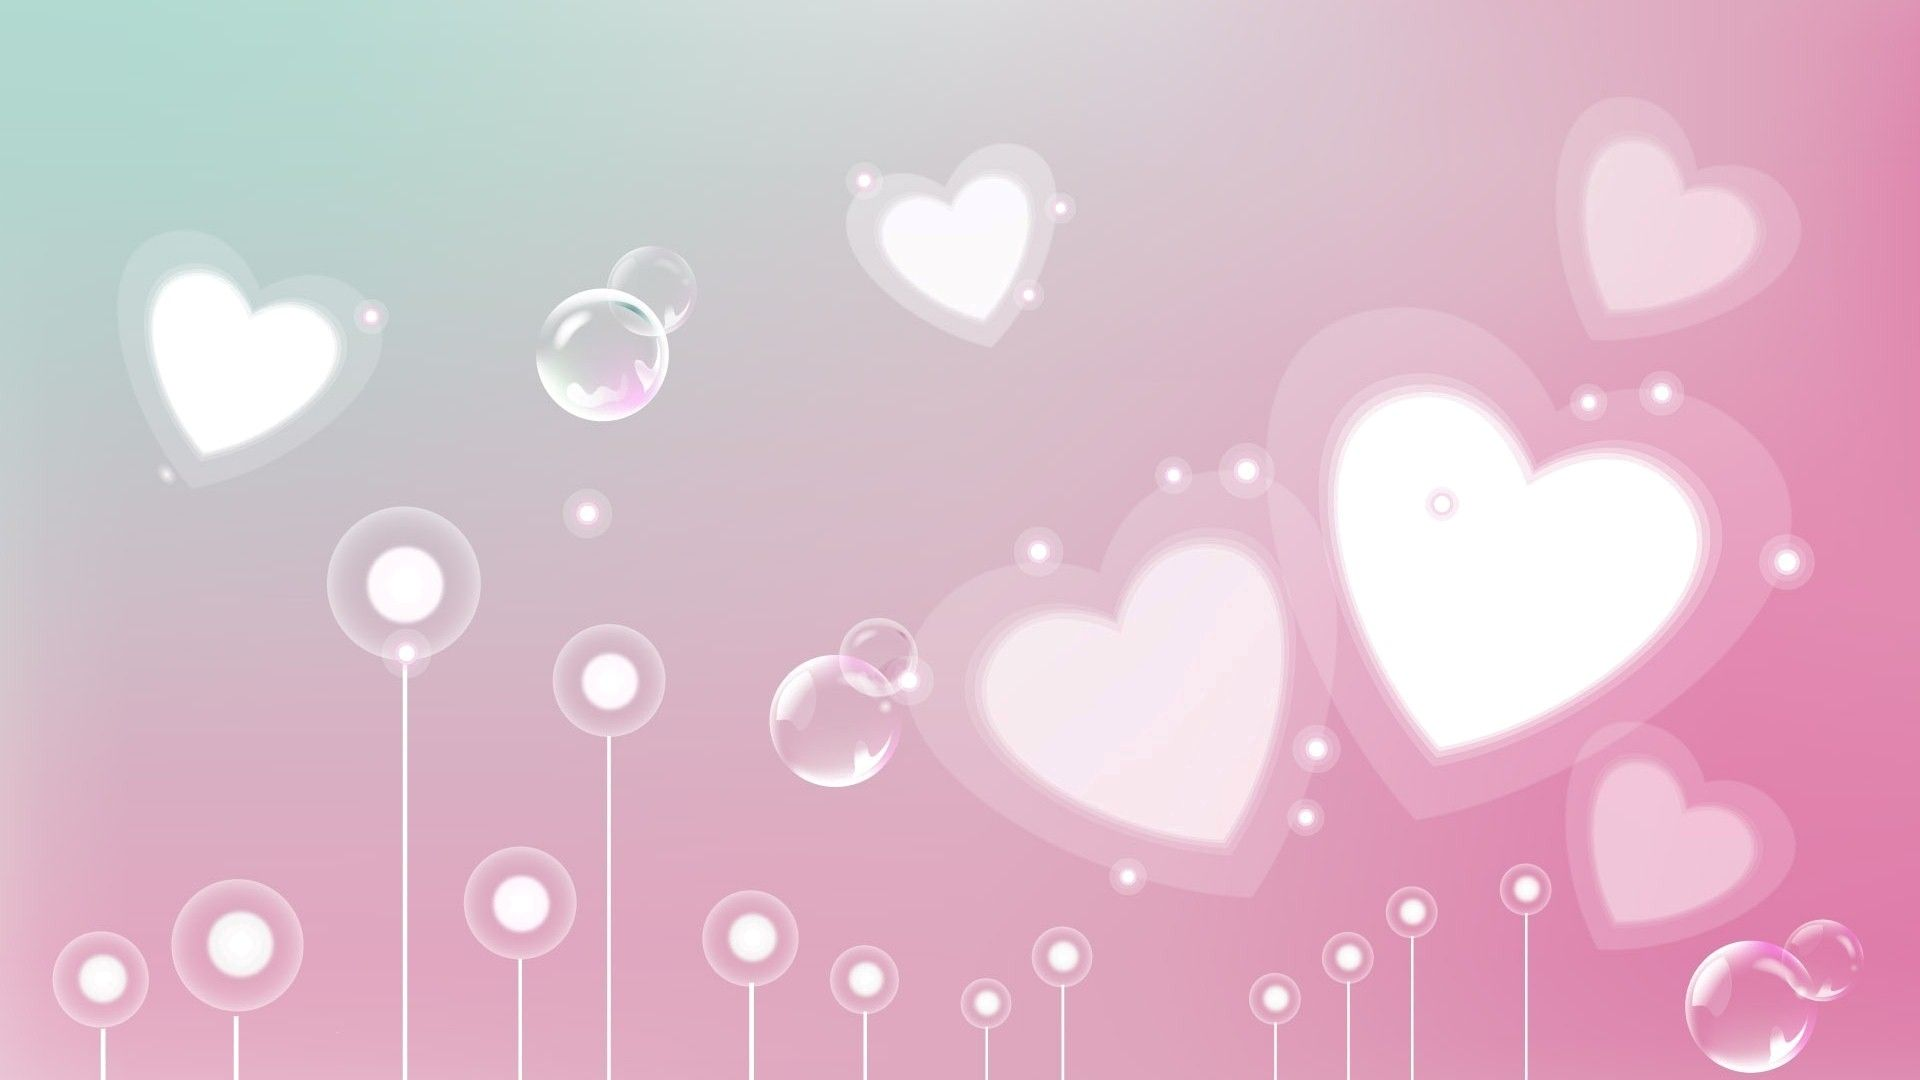 pink heart background - google search | pink hearts | pinterest